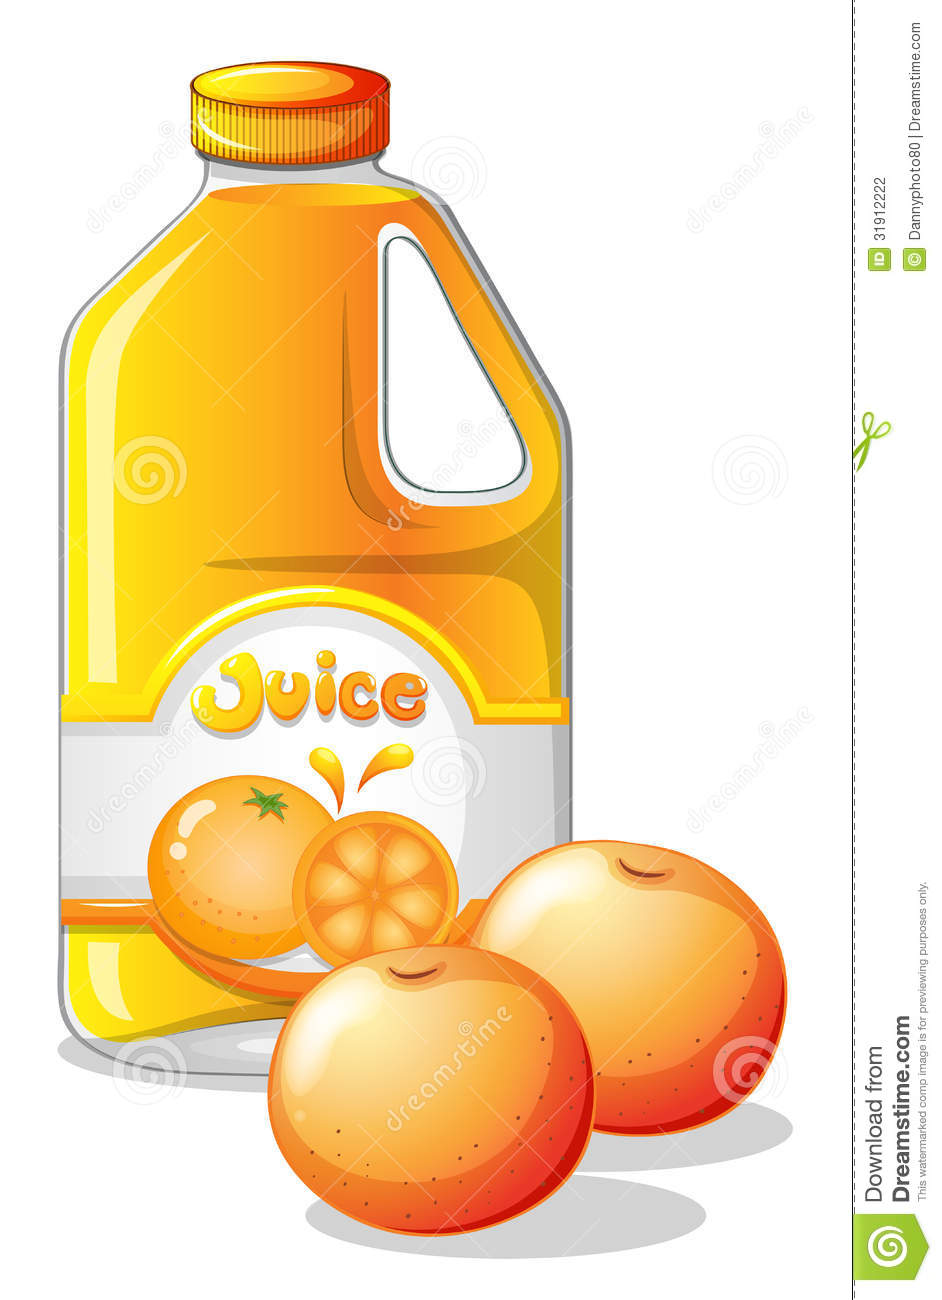 Orange Juice Cartoon A gallon of orange juice: galleryhip.com/orange-juice-cartoon.html